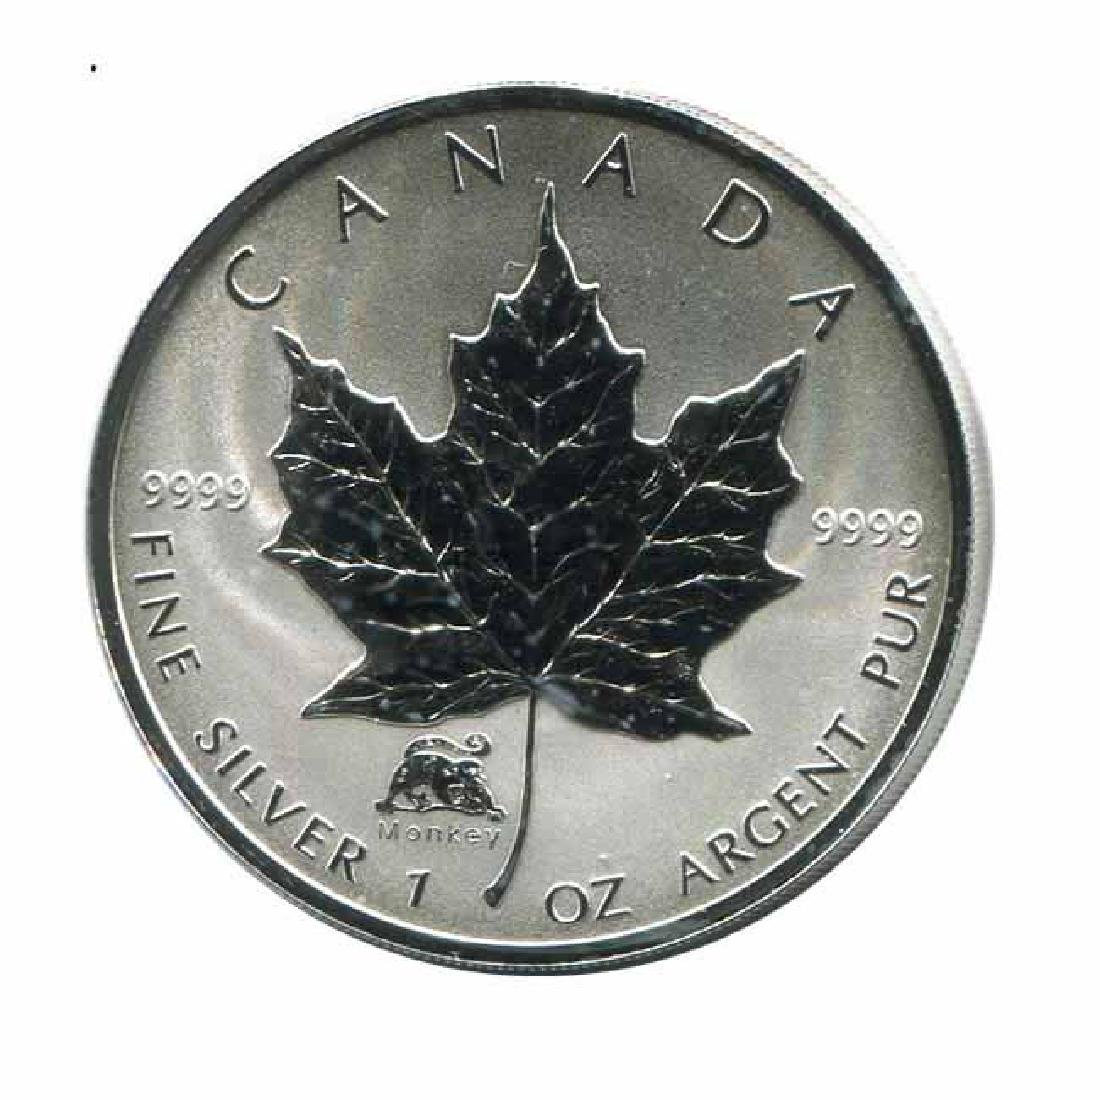 2004 Canada 1 oz. Silver Maple Leaf Reverse Proof Monke